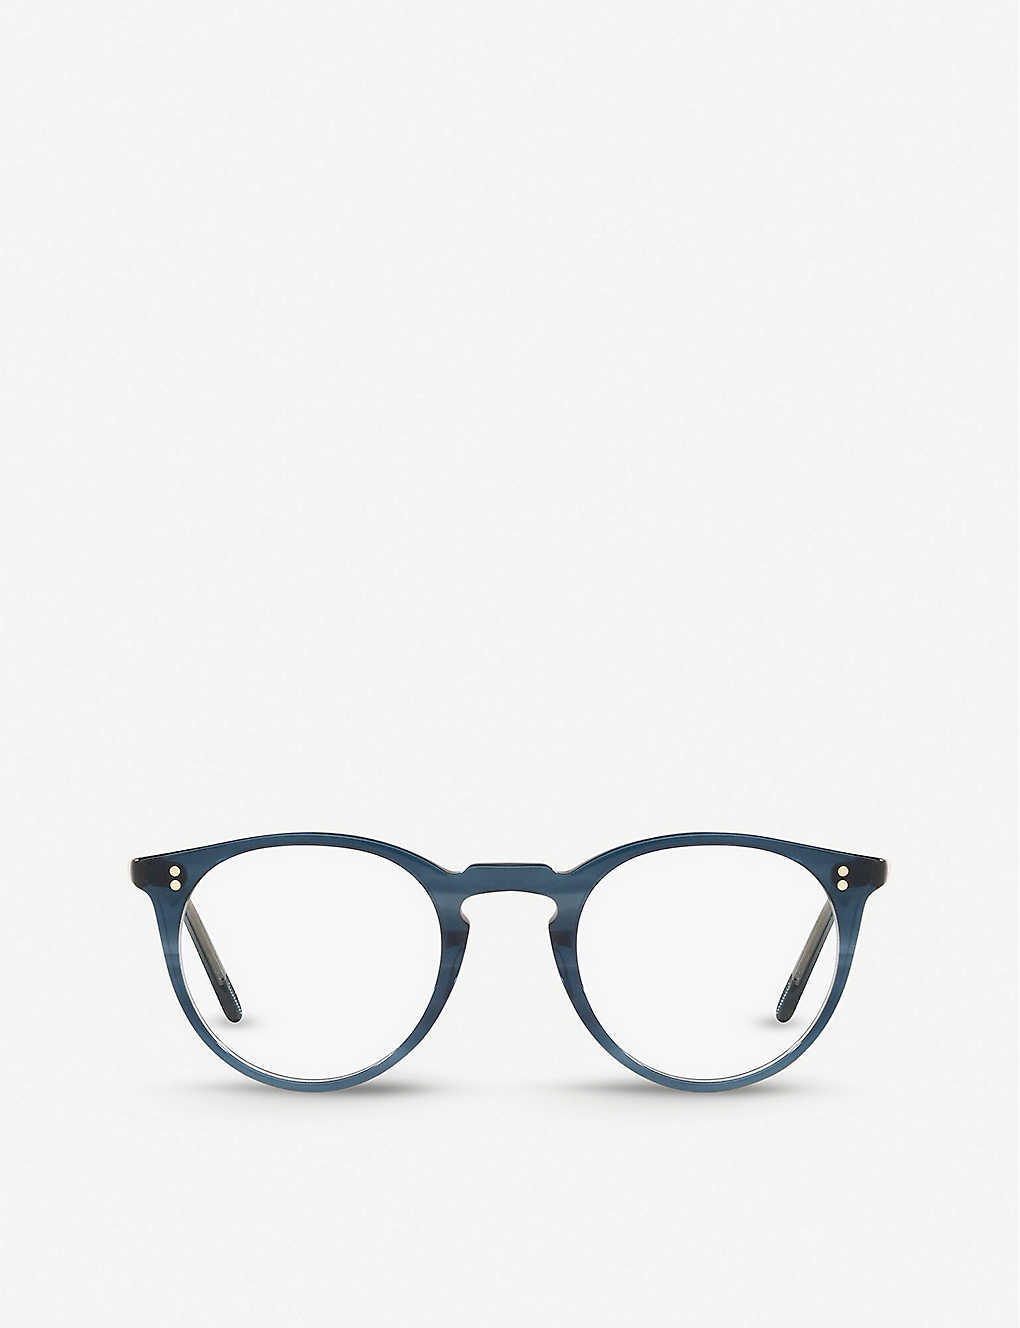 OLIVER PEOPLES: OV5183 O'Malley acetate eyeglasses